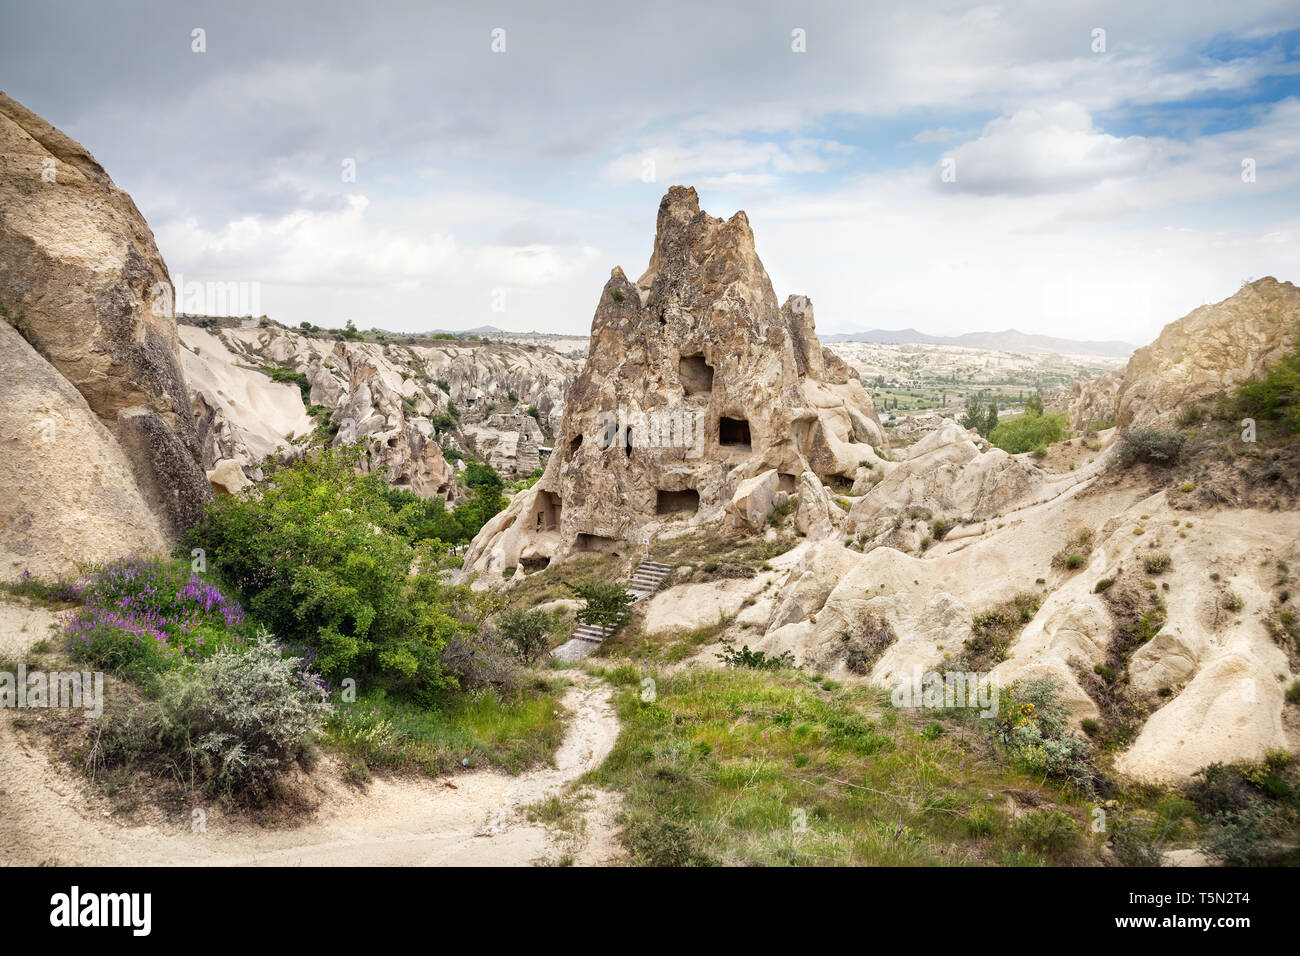 Ancient Church in the rock in Goreme open air Museum in Cappadocia, Turkey - Stock Image